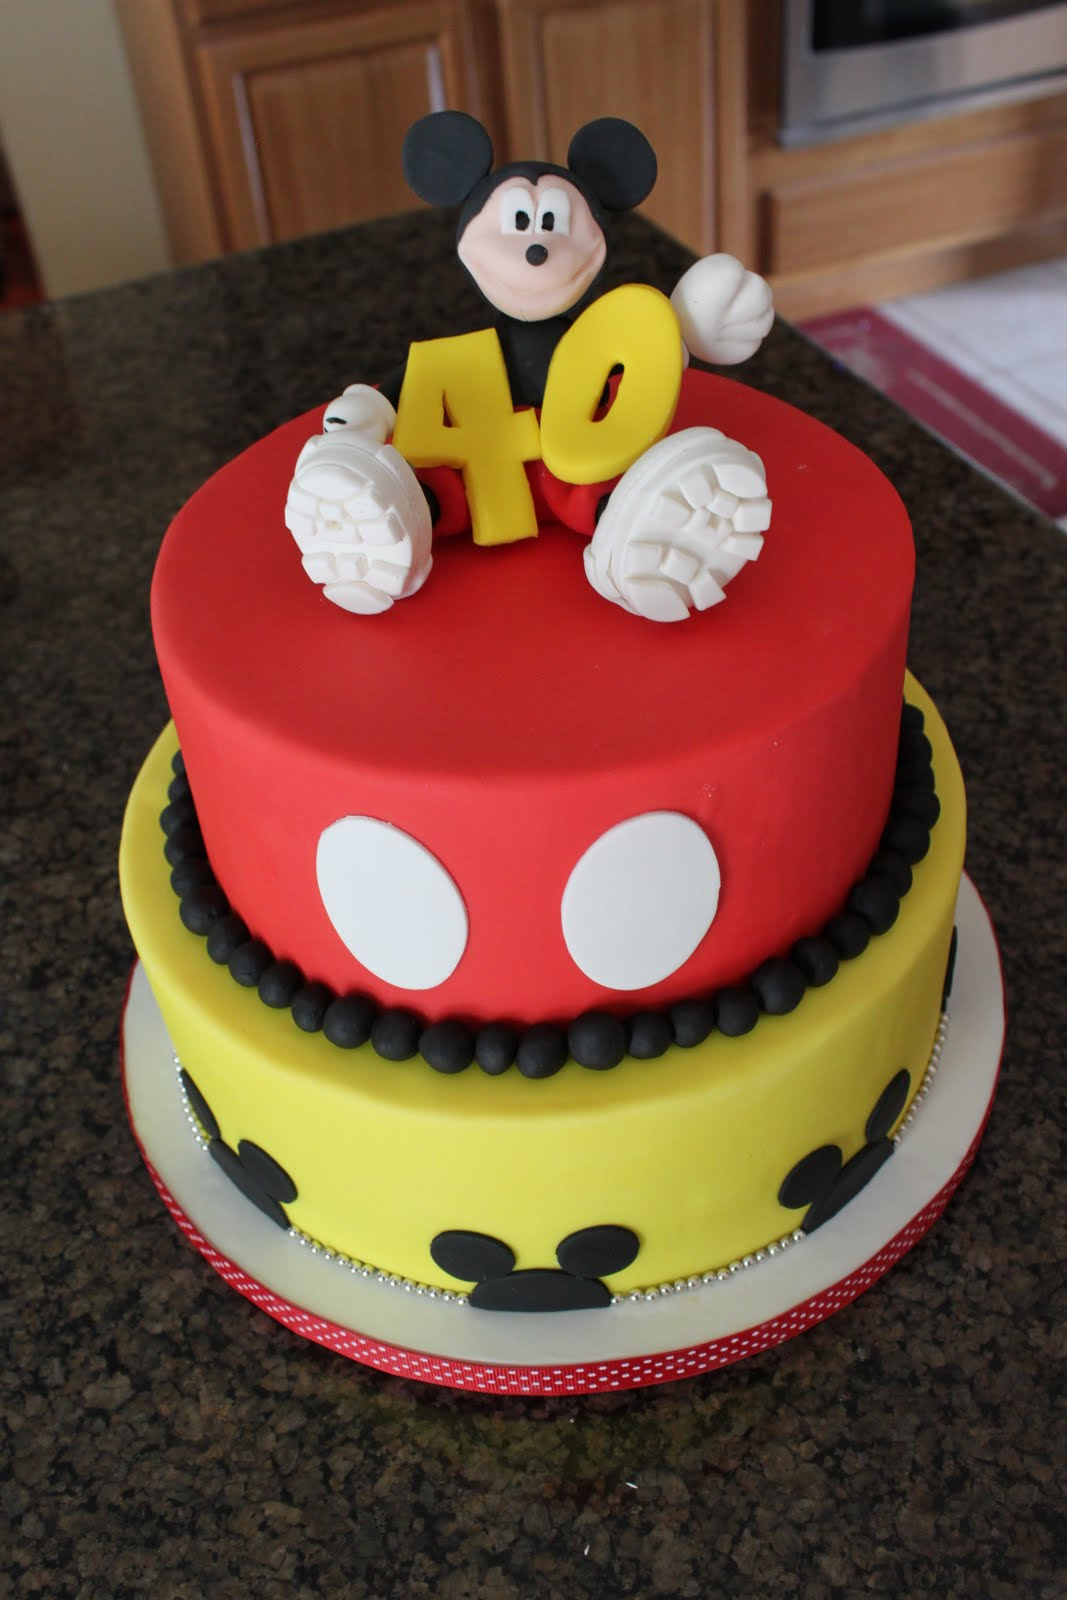 Phenomenal Mickey Mouse Cake Decoration Ideas Little Birthday Cakes Funny Birthday Cards Online Elaedamsfinfo